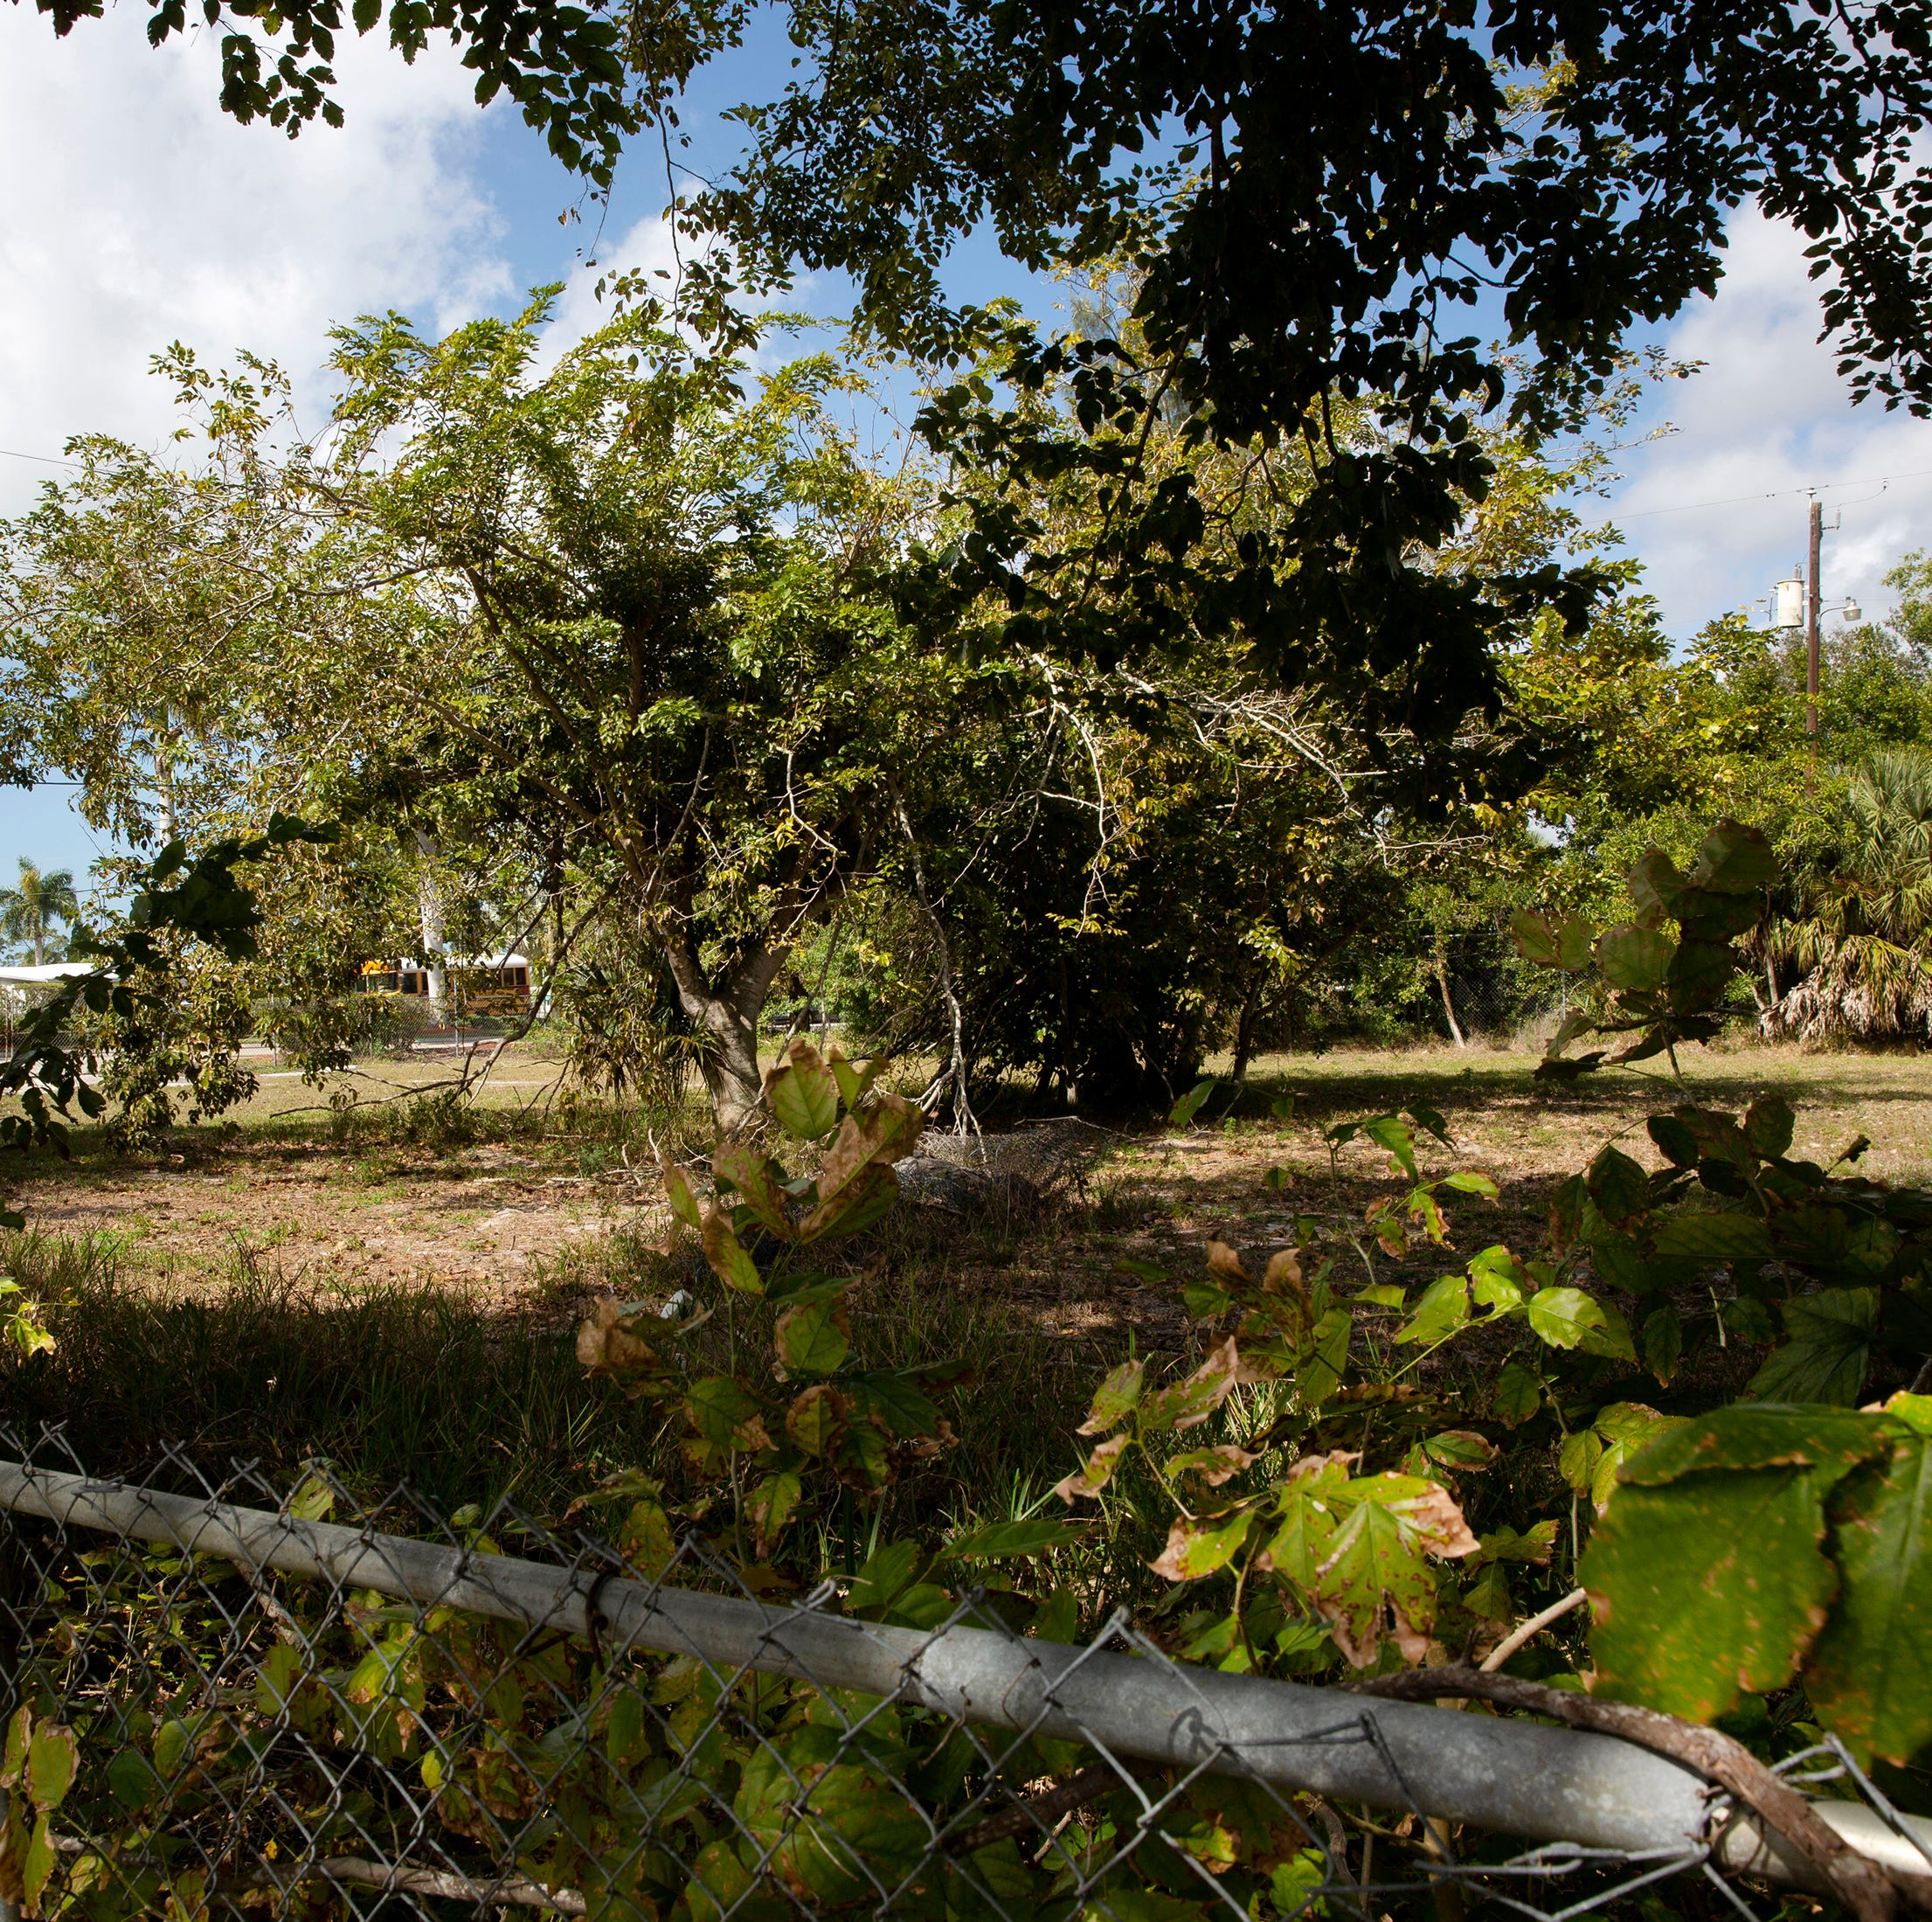 Community leaders pitch new proposal for county-owned land in East Naples